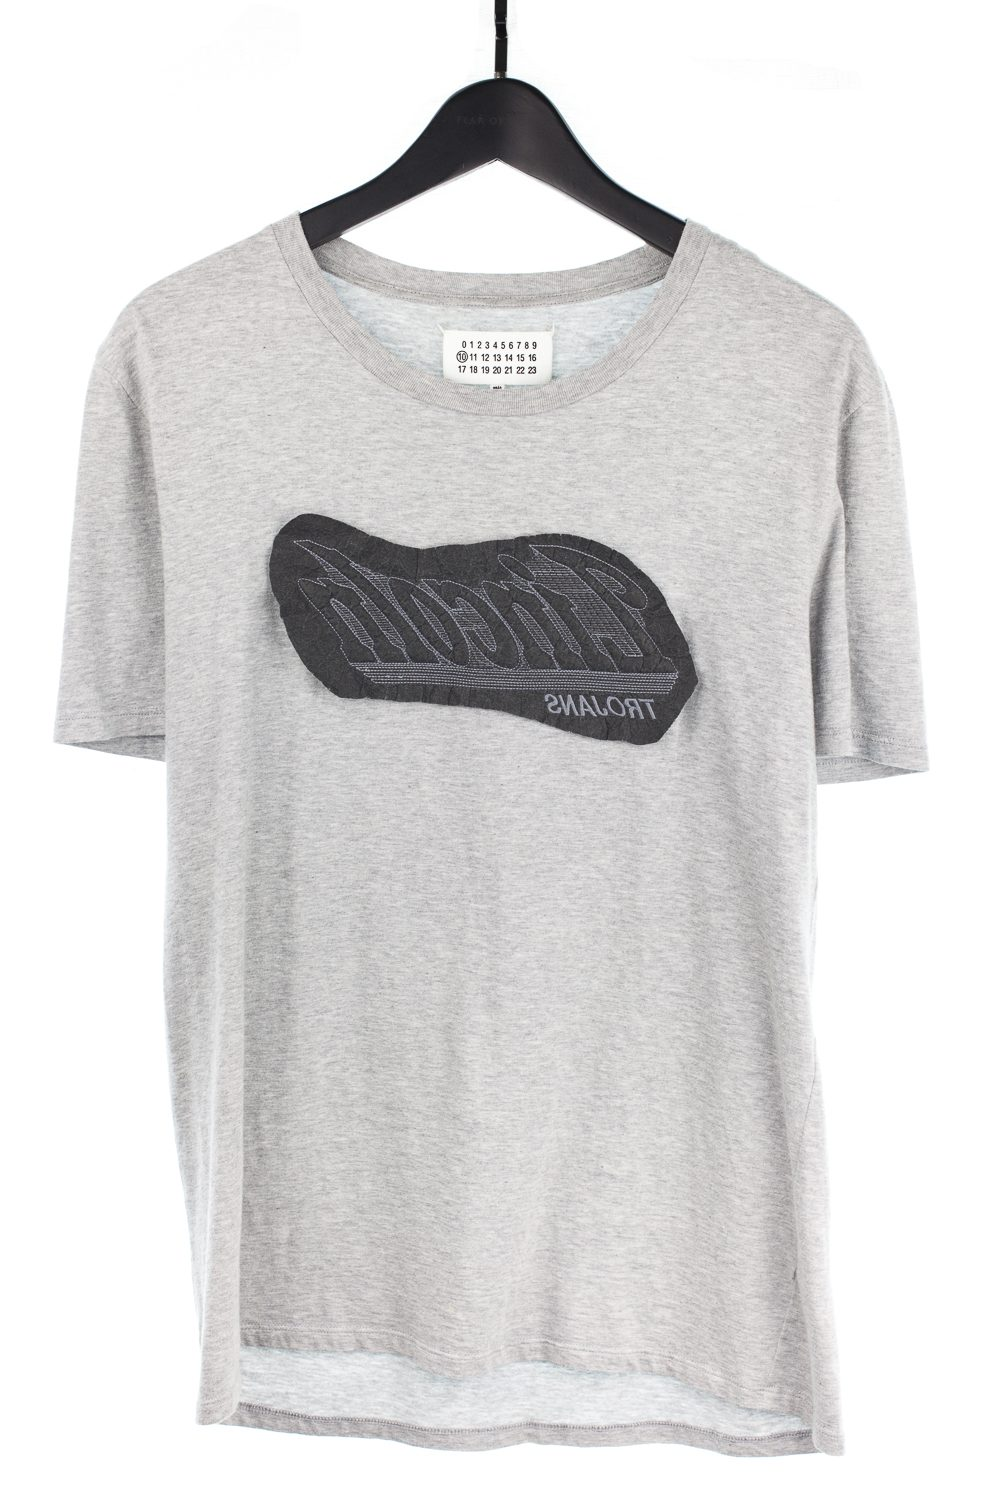 """SS13 """"Lincoln Trojans"""" Reverse Embroidered Tee"""